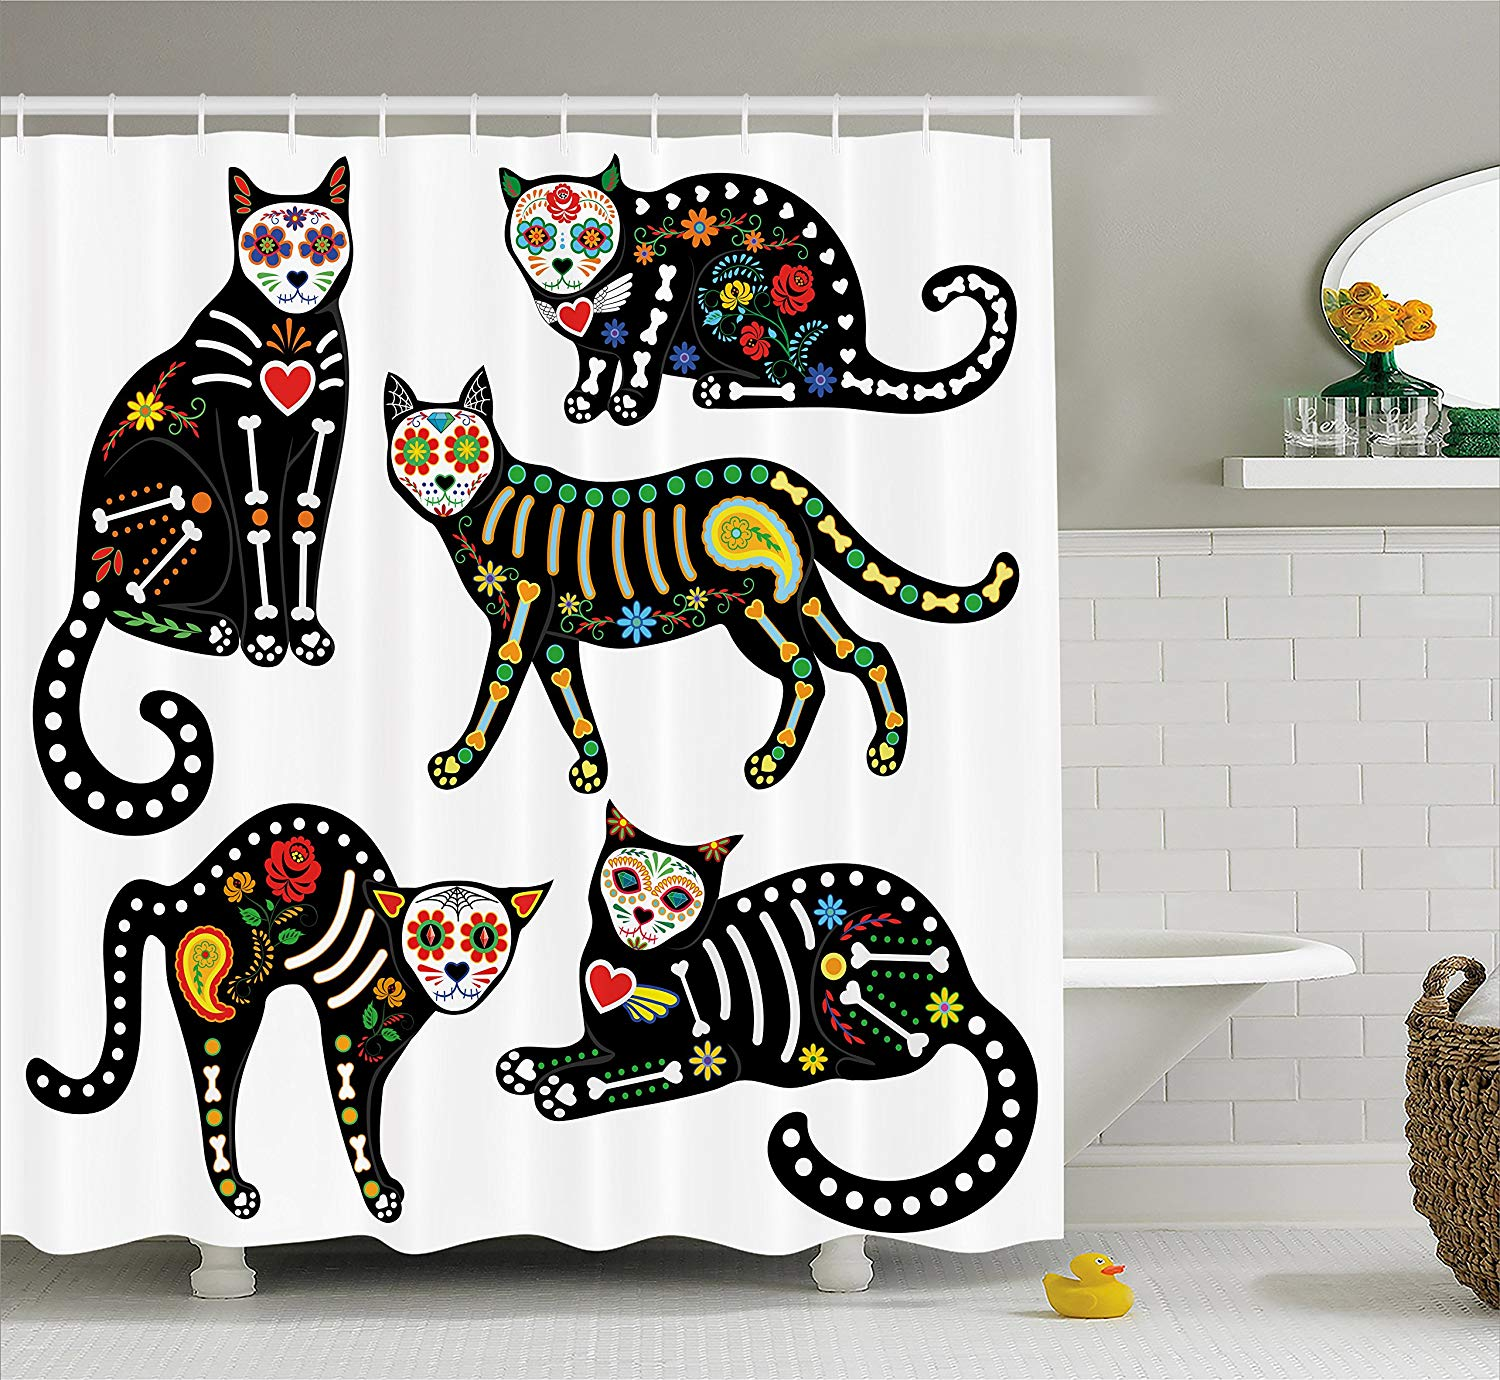 Get Quotations Ambesonne Sugar Skull Decor Shower Curtain Calavera Ornate Black Cats In Mexican Style Holiday The